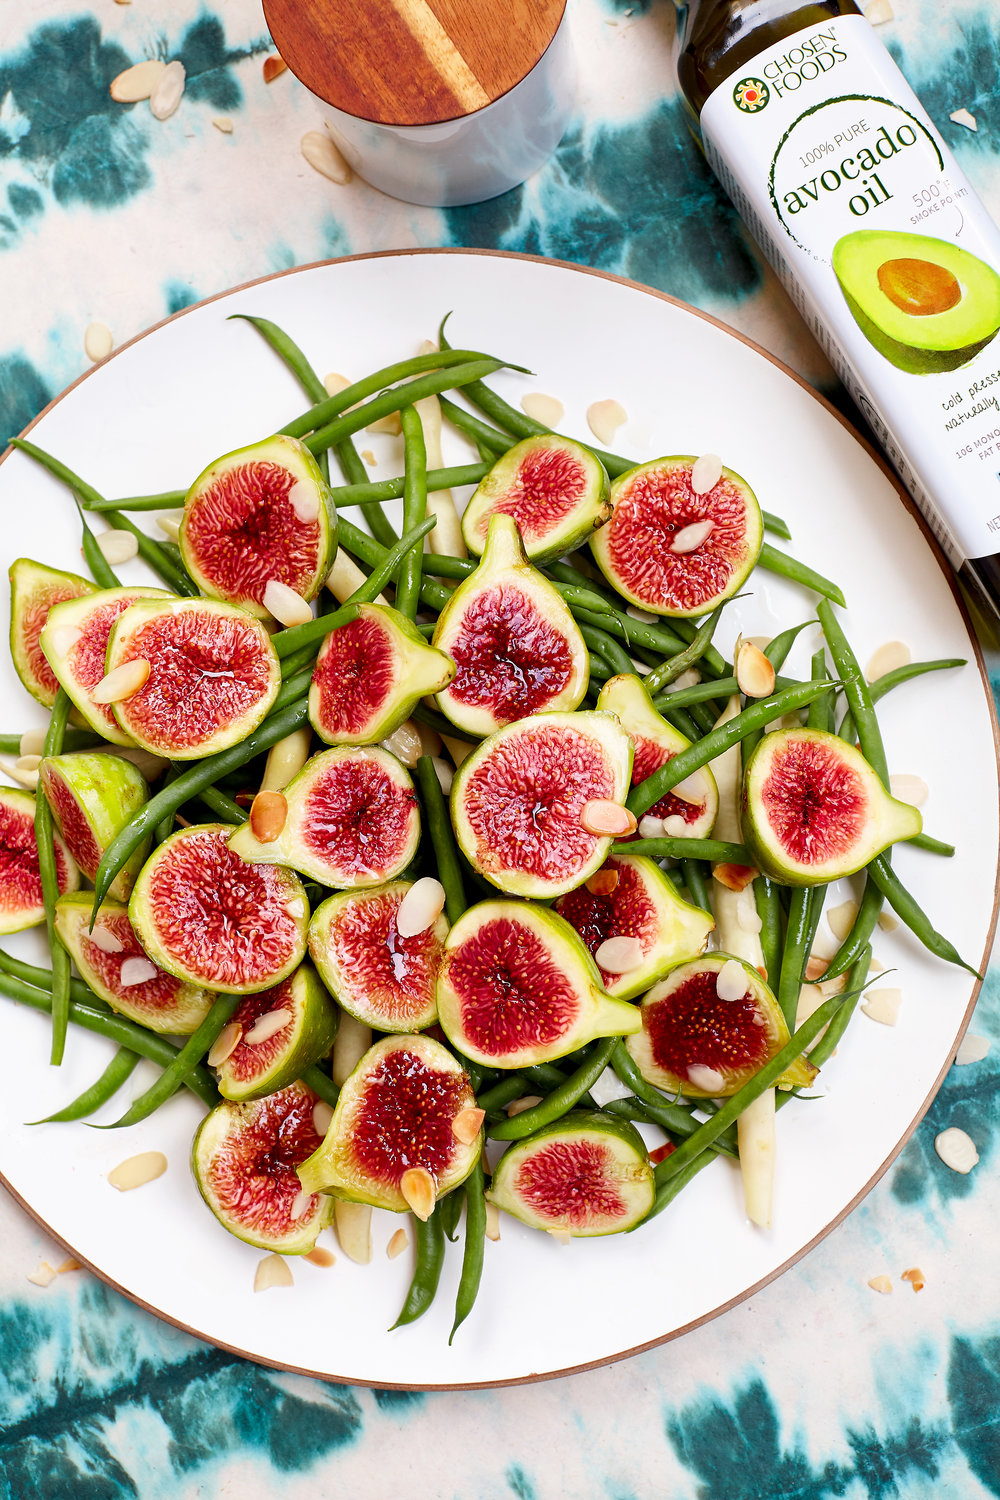 TIGER STRIPE FIG AND GREEN BEAN SALAD- I